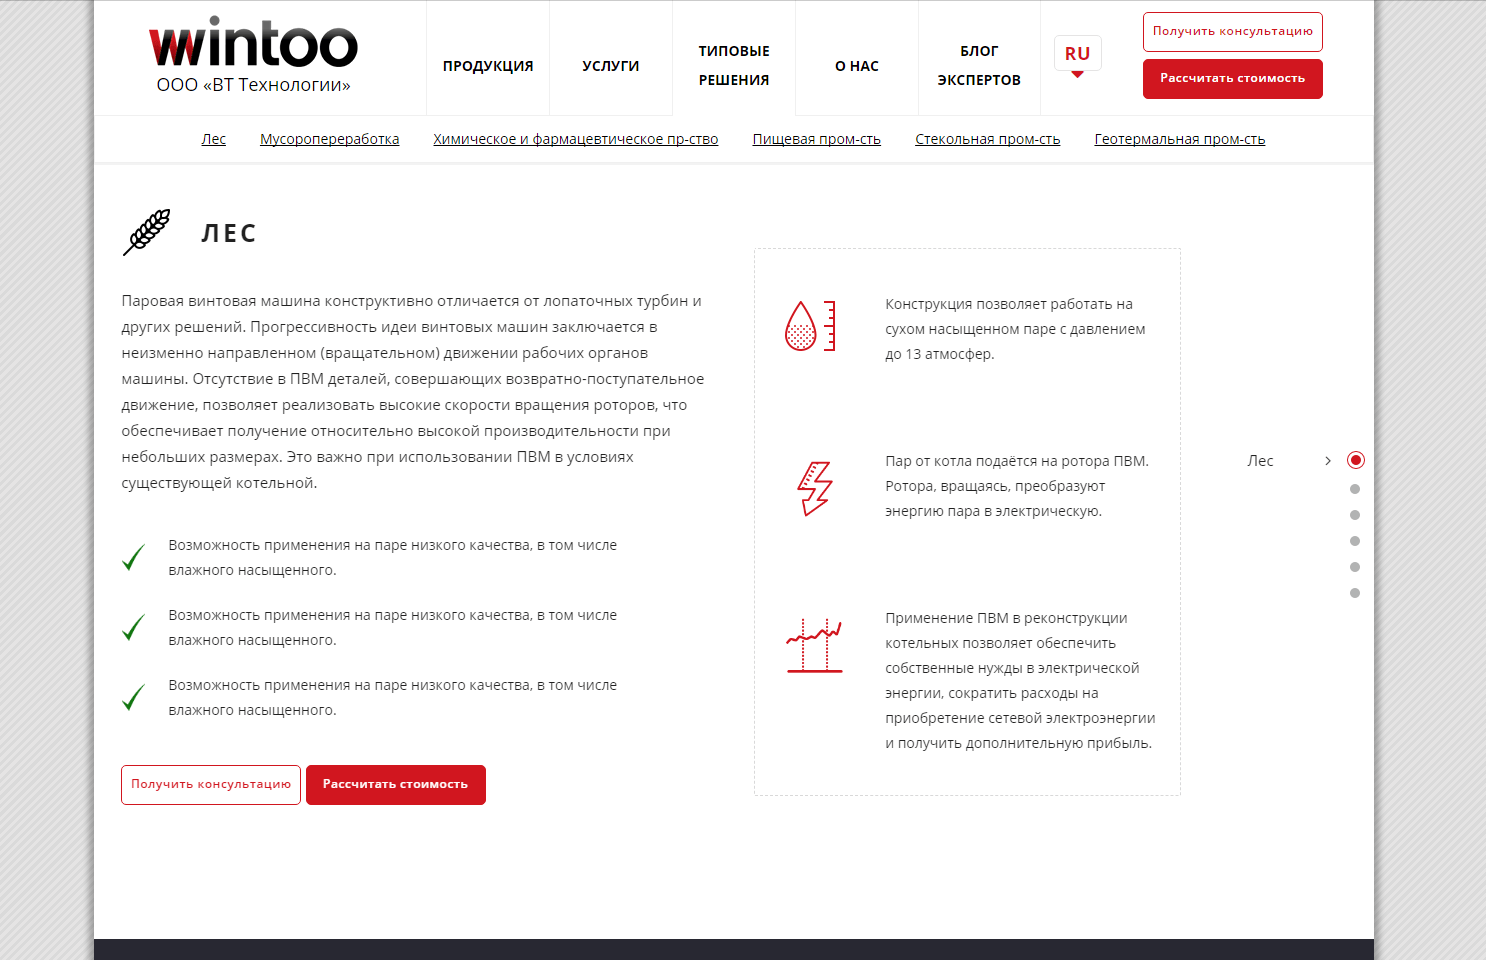 wintoo services shot